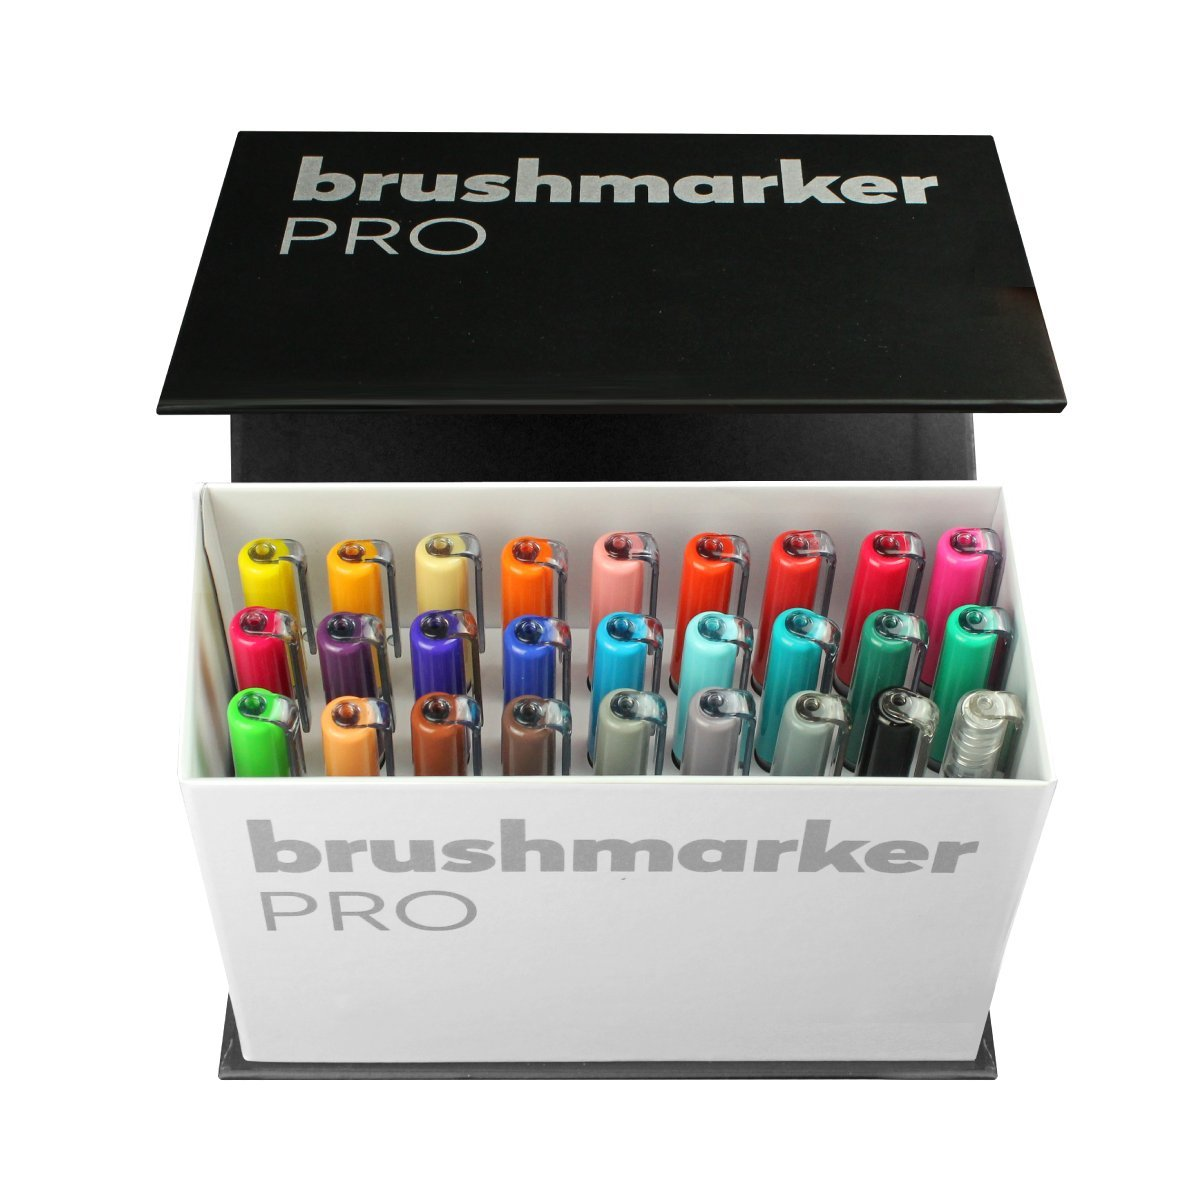 Karin Mini Box Pro 26 Piece + 1 Blender Transparent Body with Ink Free System Brush Marker Pro Brush, 2 4 ml Liquid Colour: No Felt-Tip Pen Marker